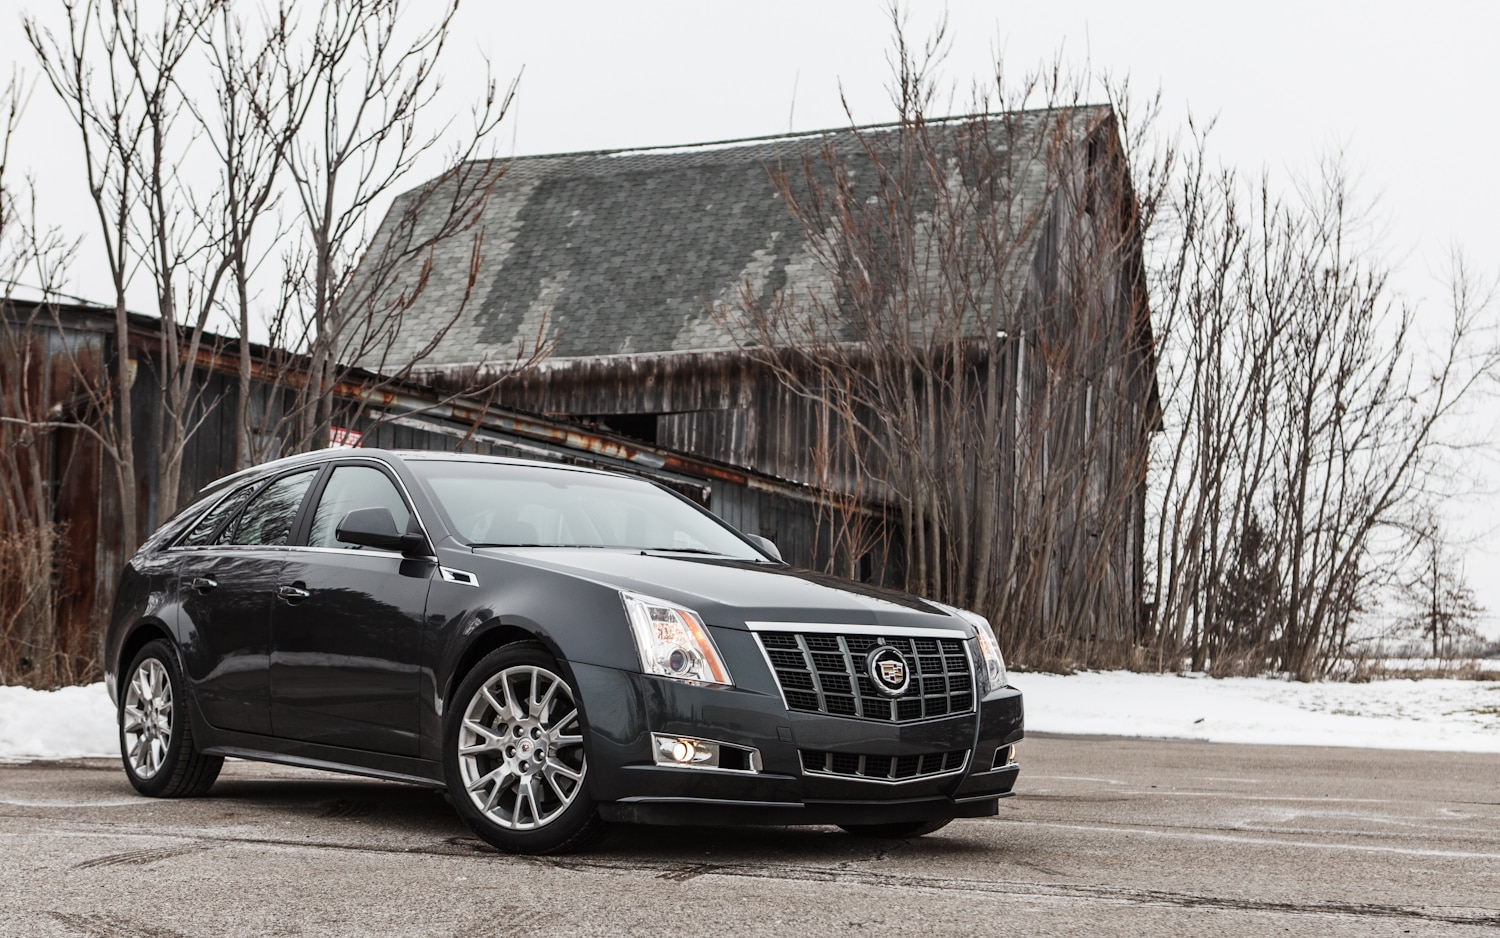 2013 Cadillac CTS Sport Wagon Front Right View 21